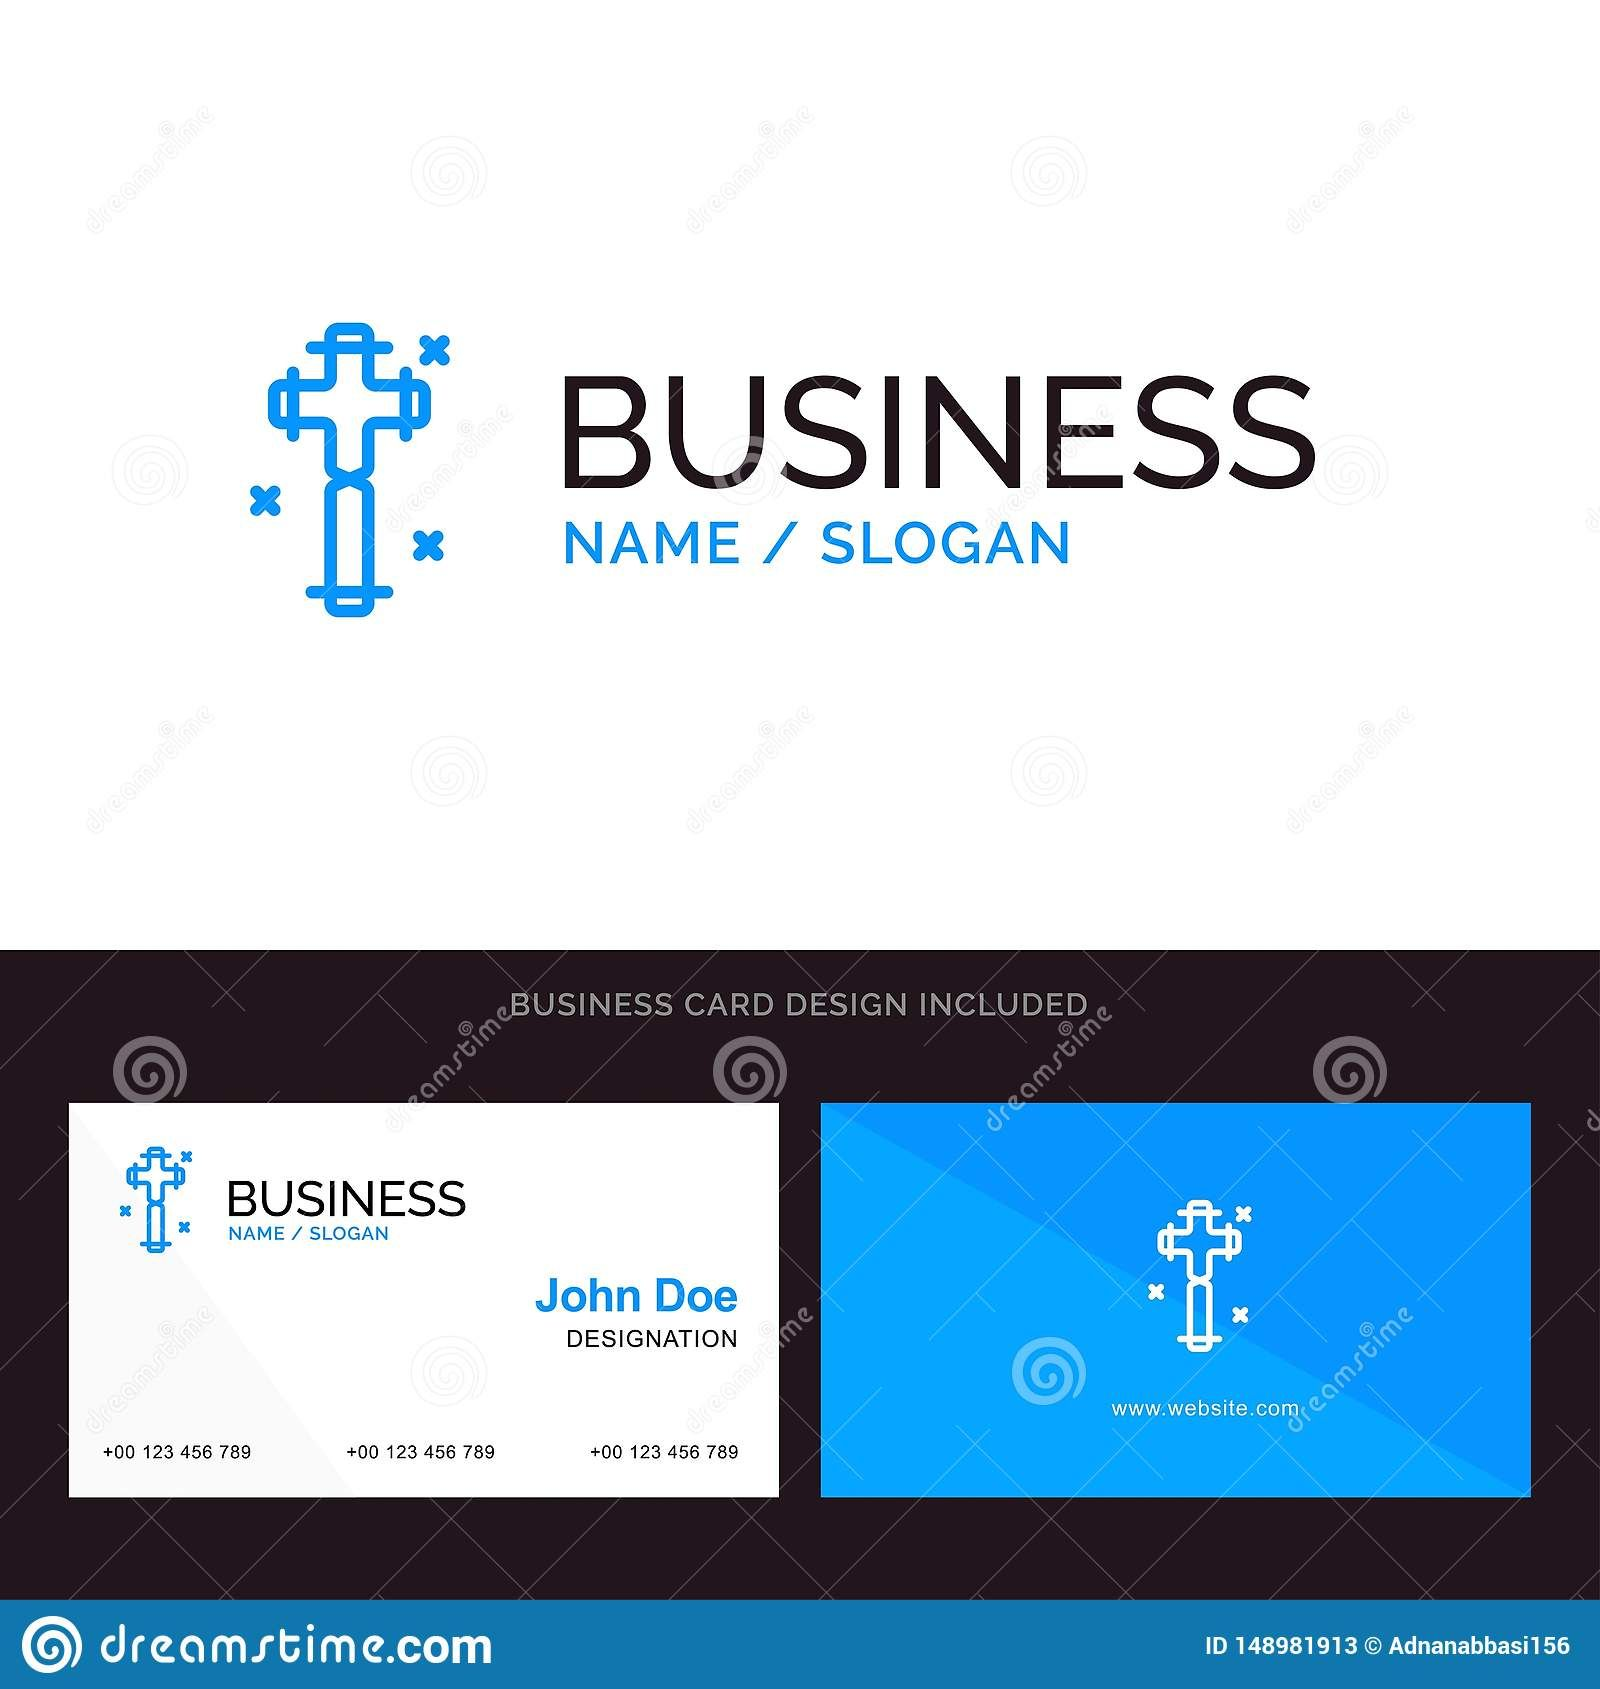 Celebration Christian Cross Easter Blue Business Logo And Within Christian Business Ca Free Business Card Templates Business Card Template Business Template